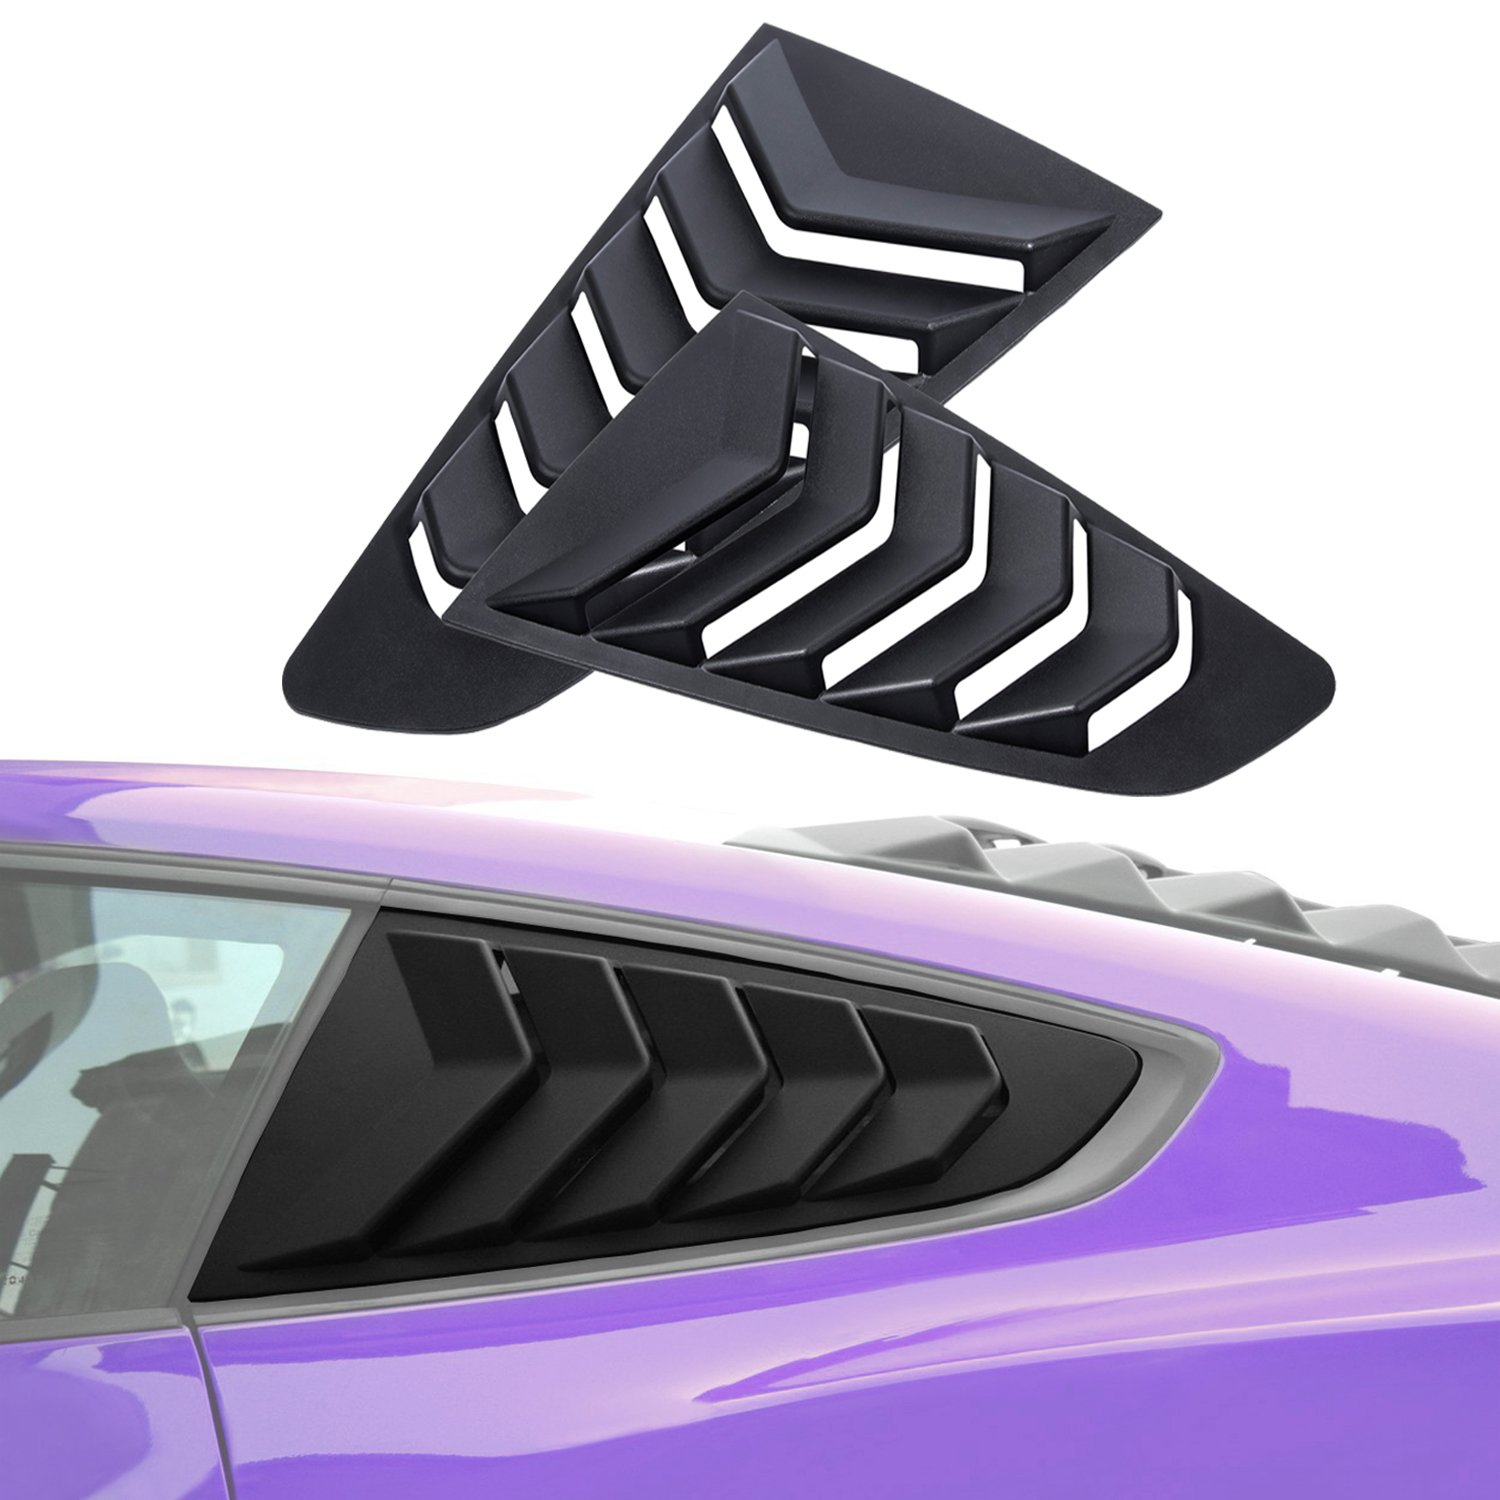 Yoursme Window Visor Black ABS Rear Side Window Louvers Cover Fits 2015 2016 2017 Ford Mustang